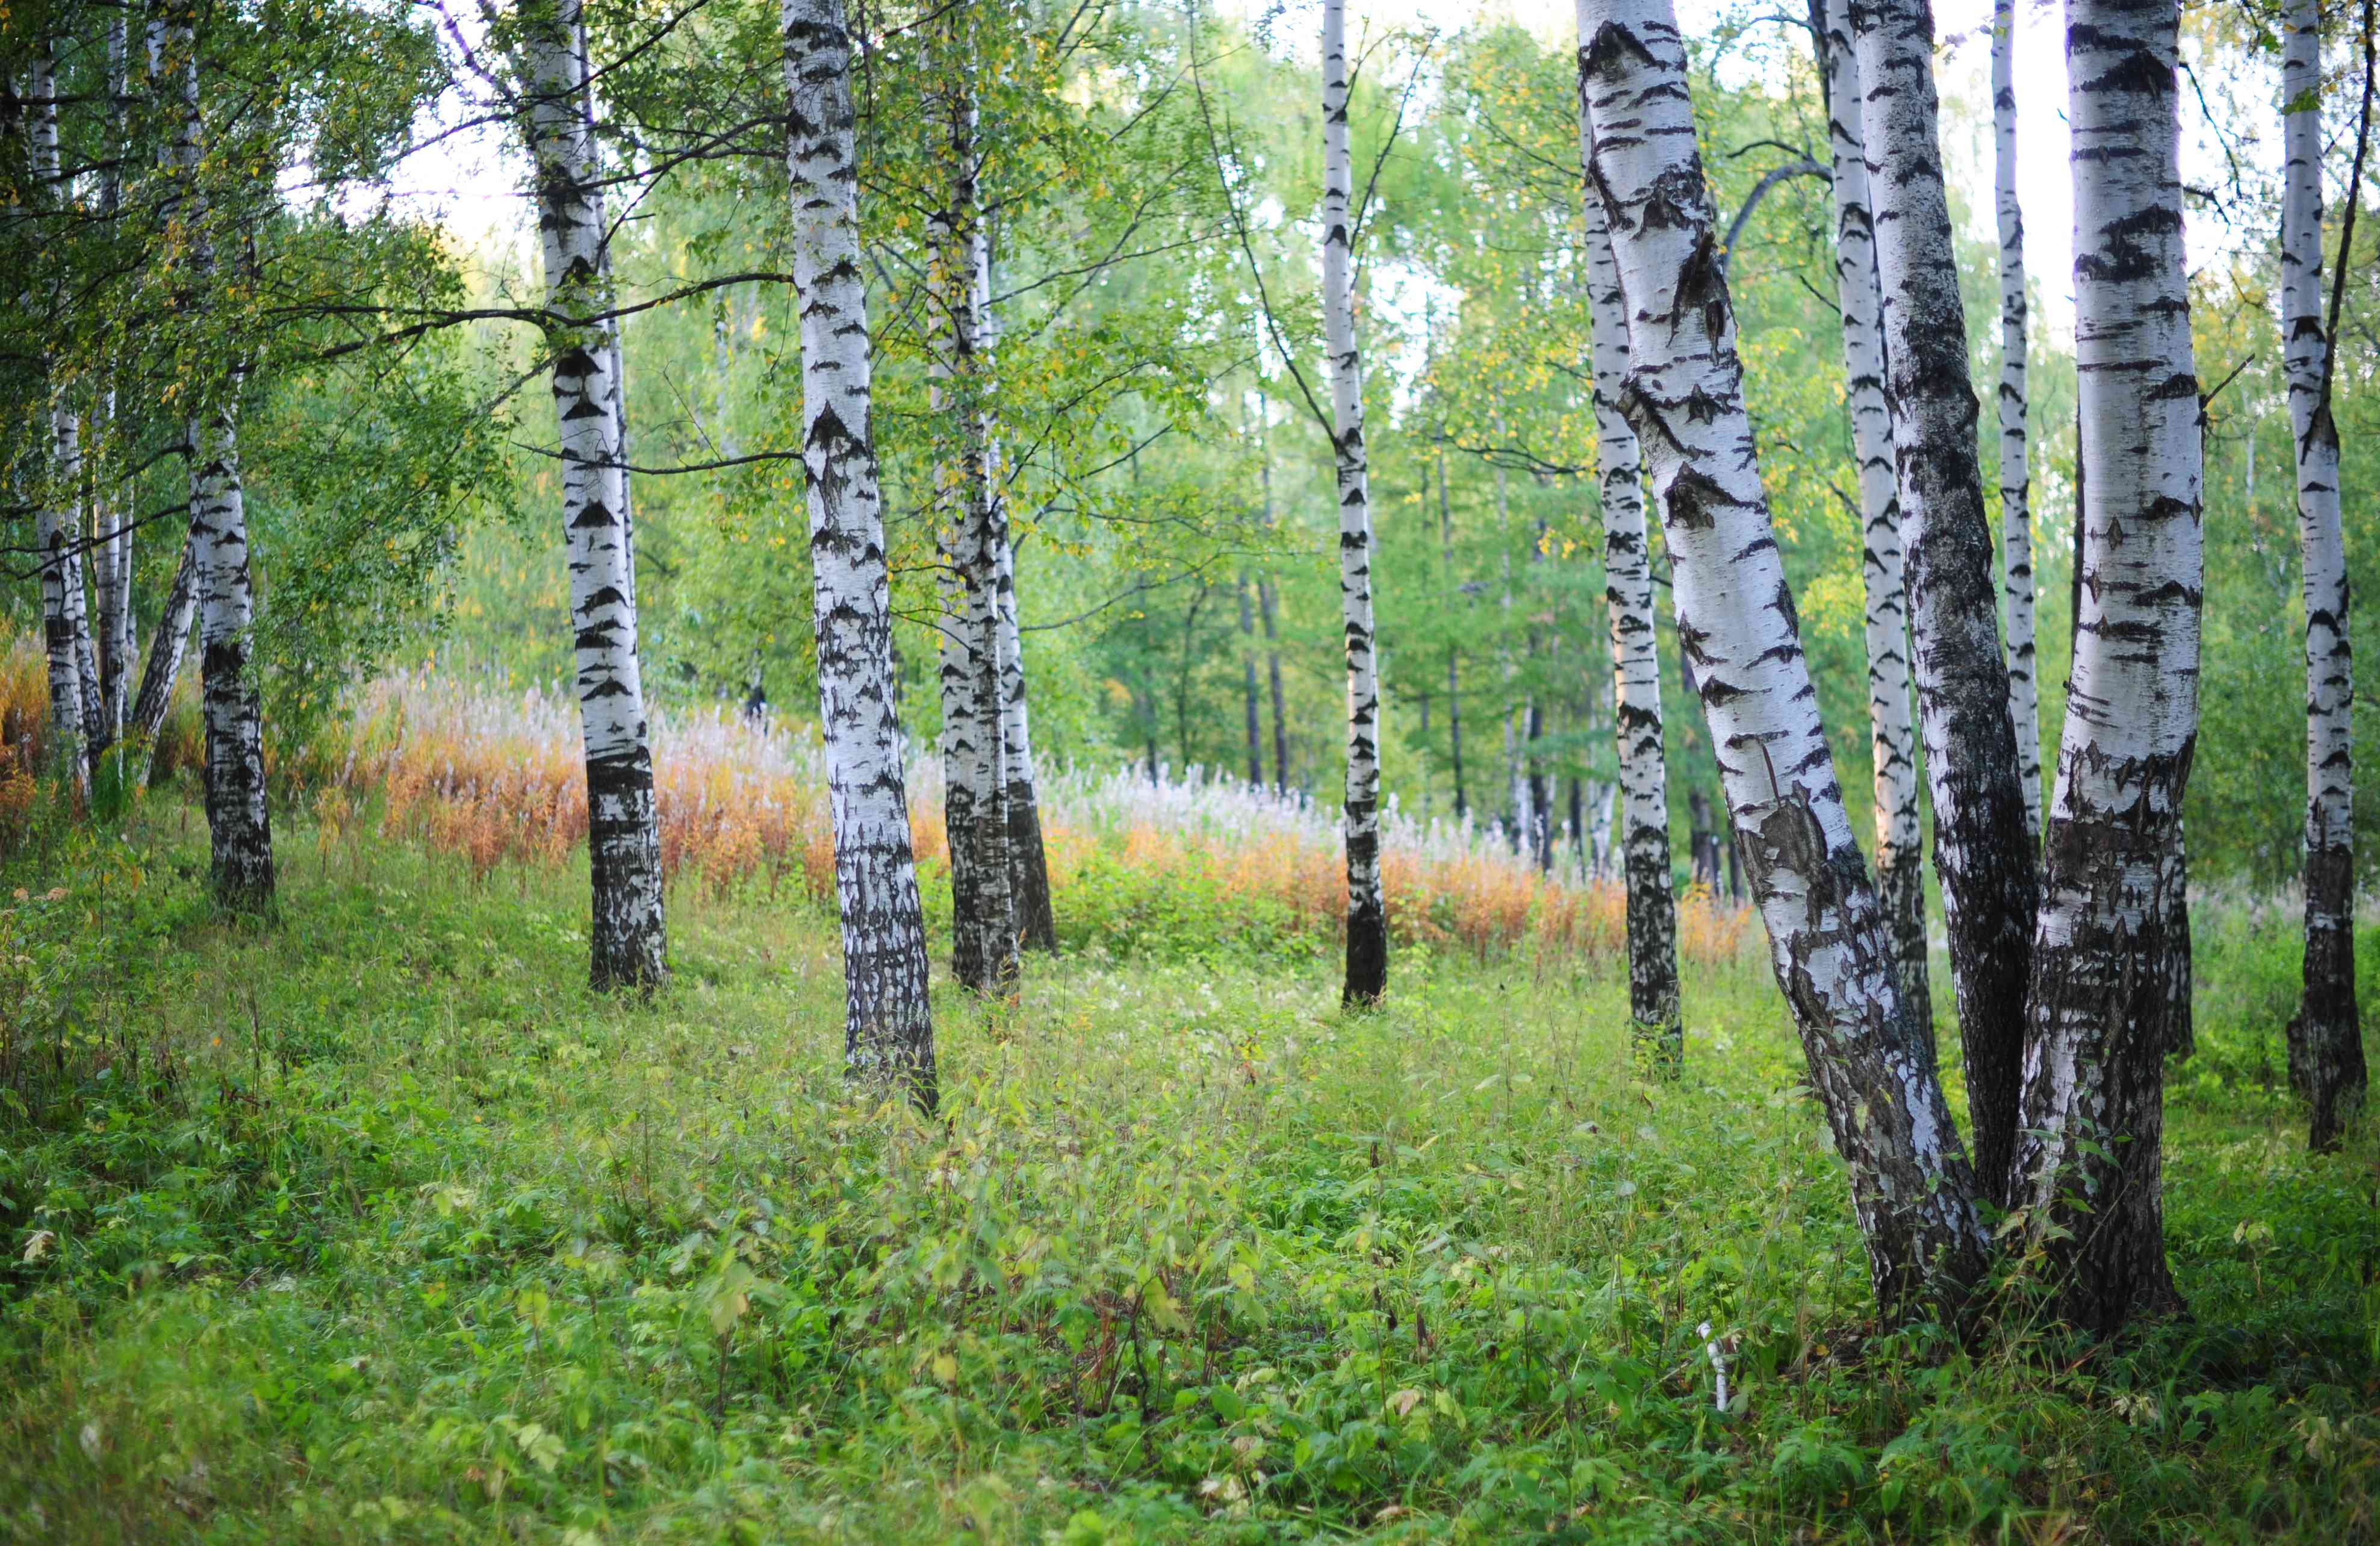 Silver birch trees in forest with silver colored trunks